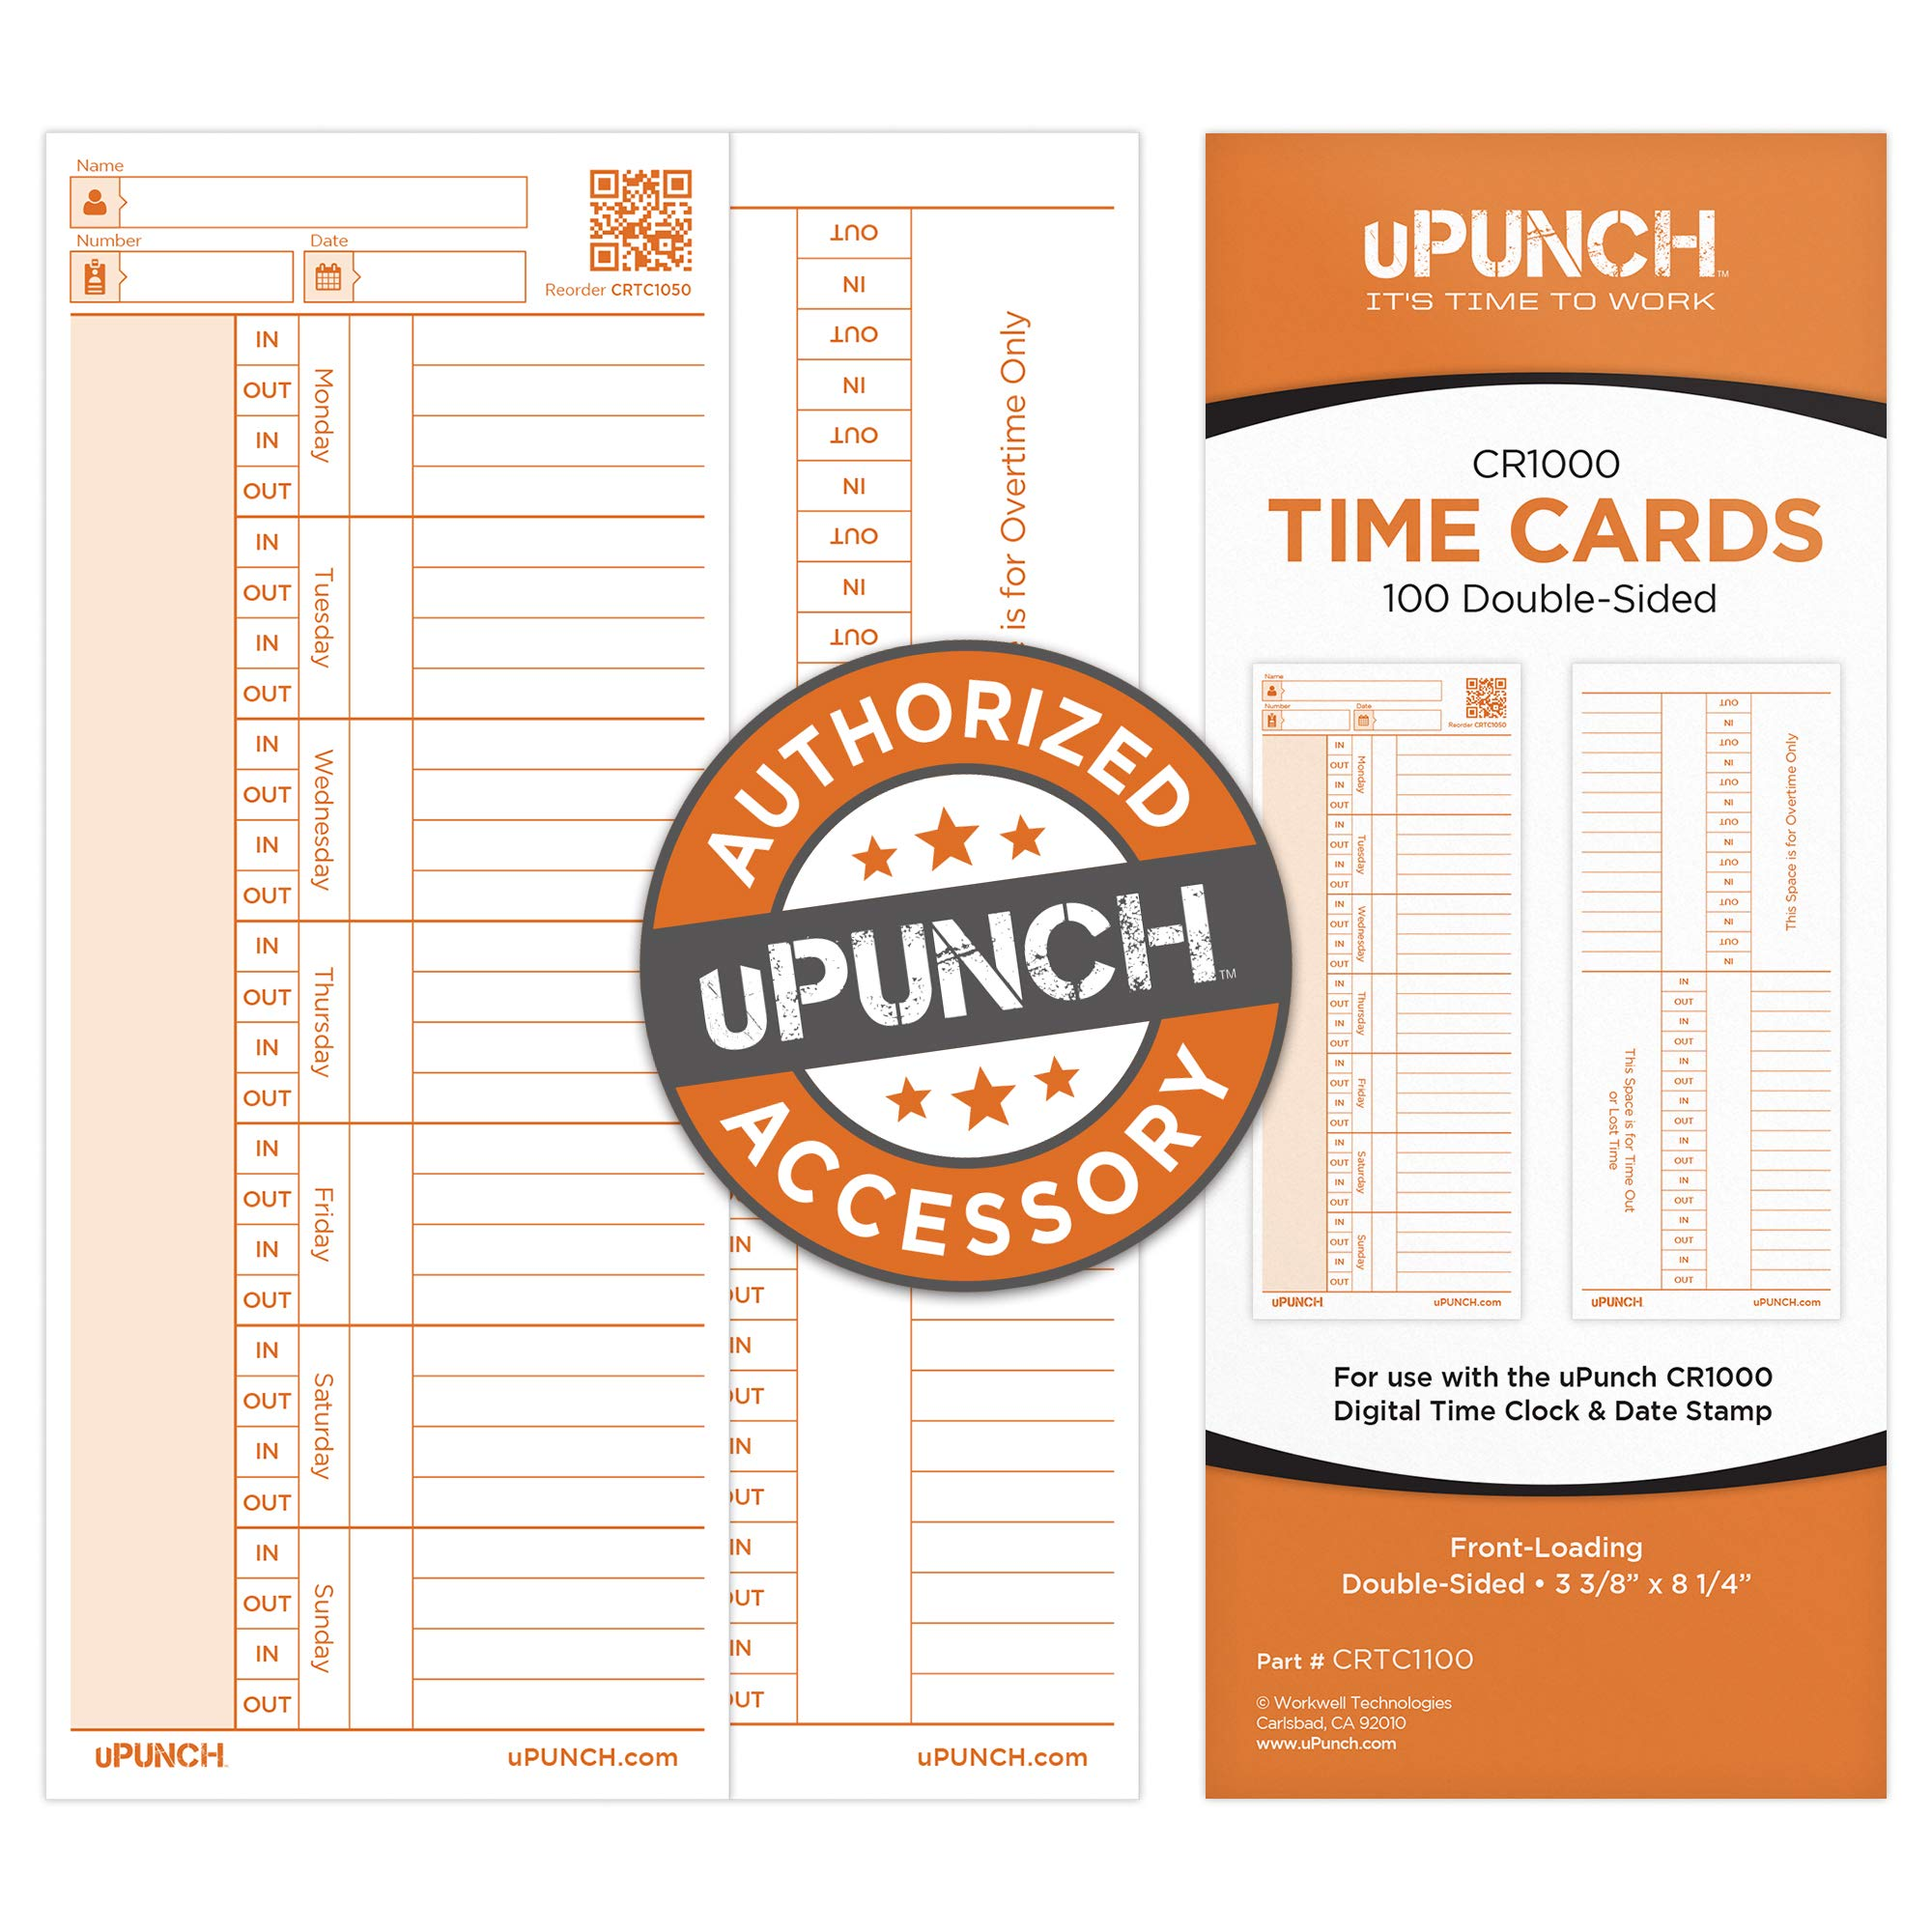 100 uPunch Time Cards for CR1000 Digital Time Clock & Date Stamp by uPunch